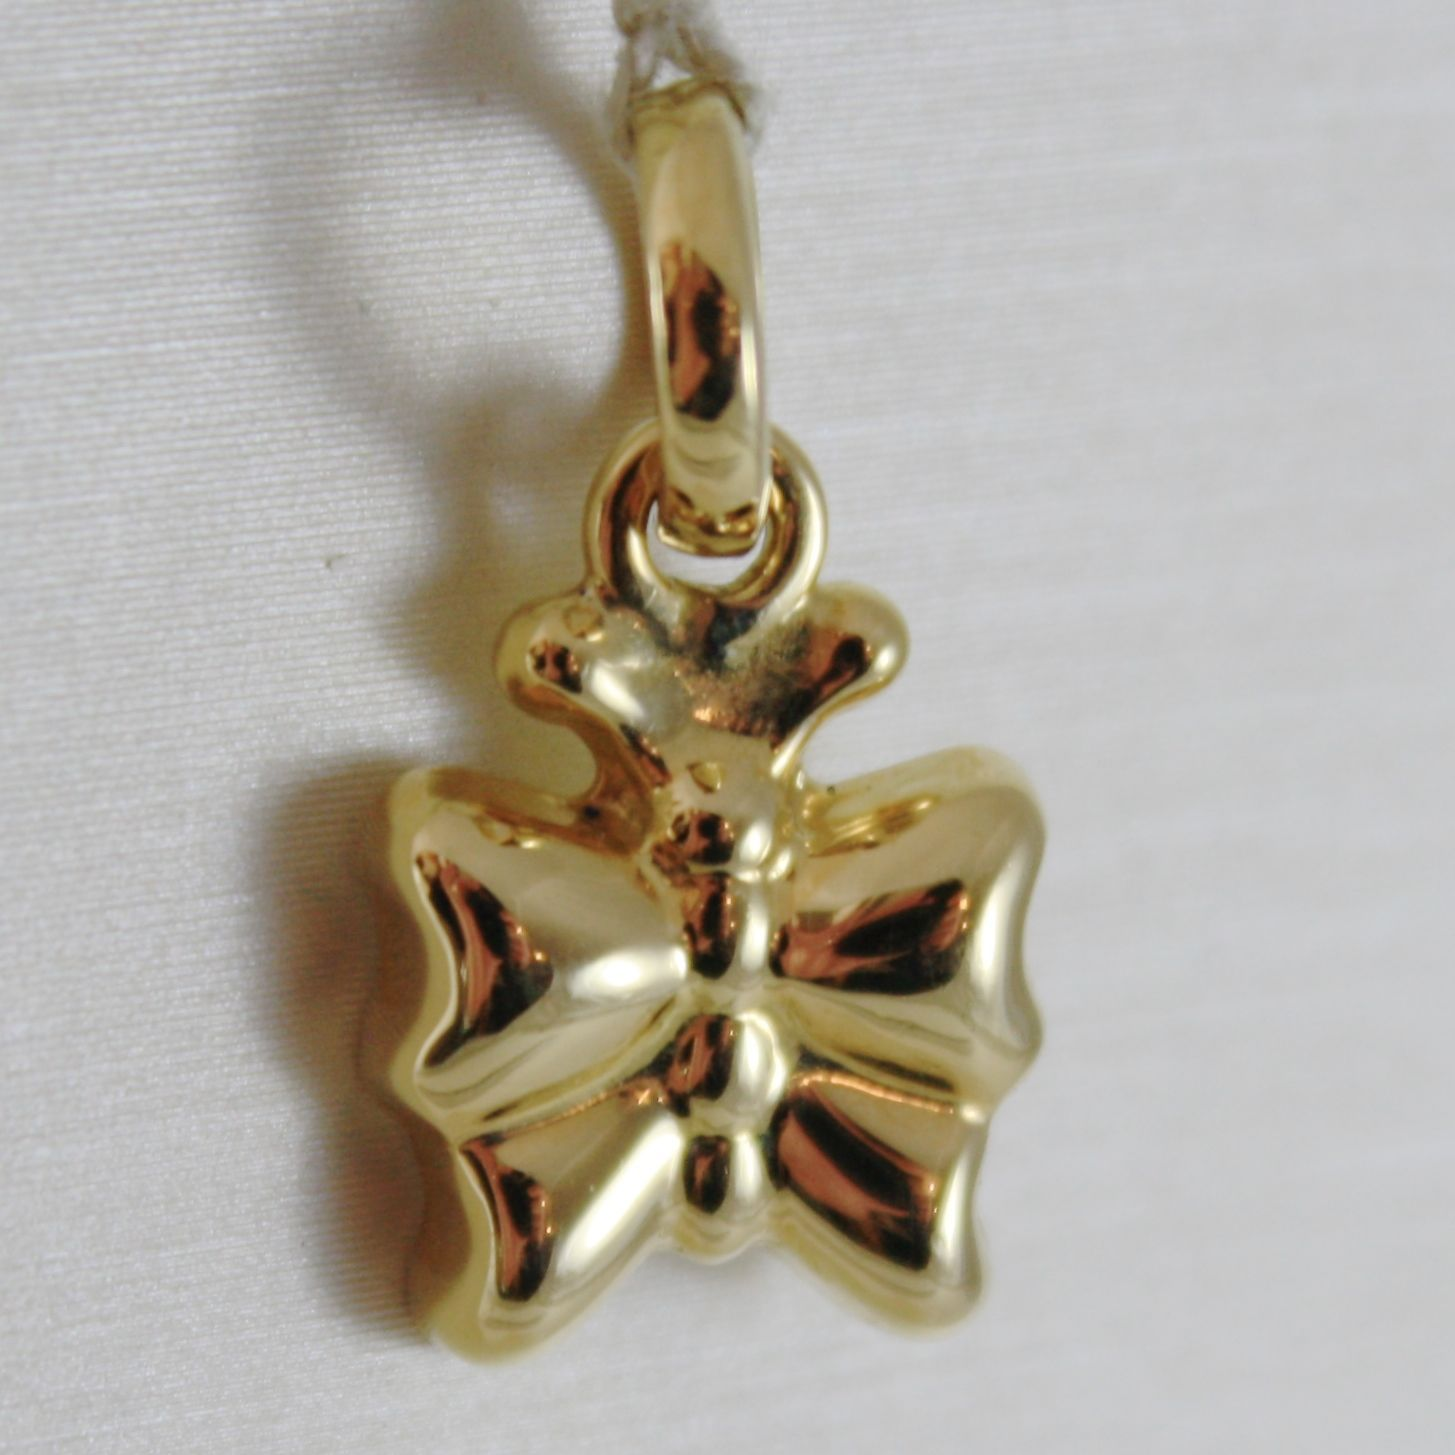 18K YELLOW GOLD ROUNDED MINI BUTTERFLY CHARM PENDANT 0.75 INCHES MADE IN ITALY